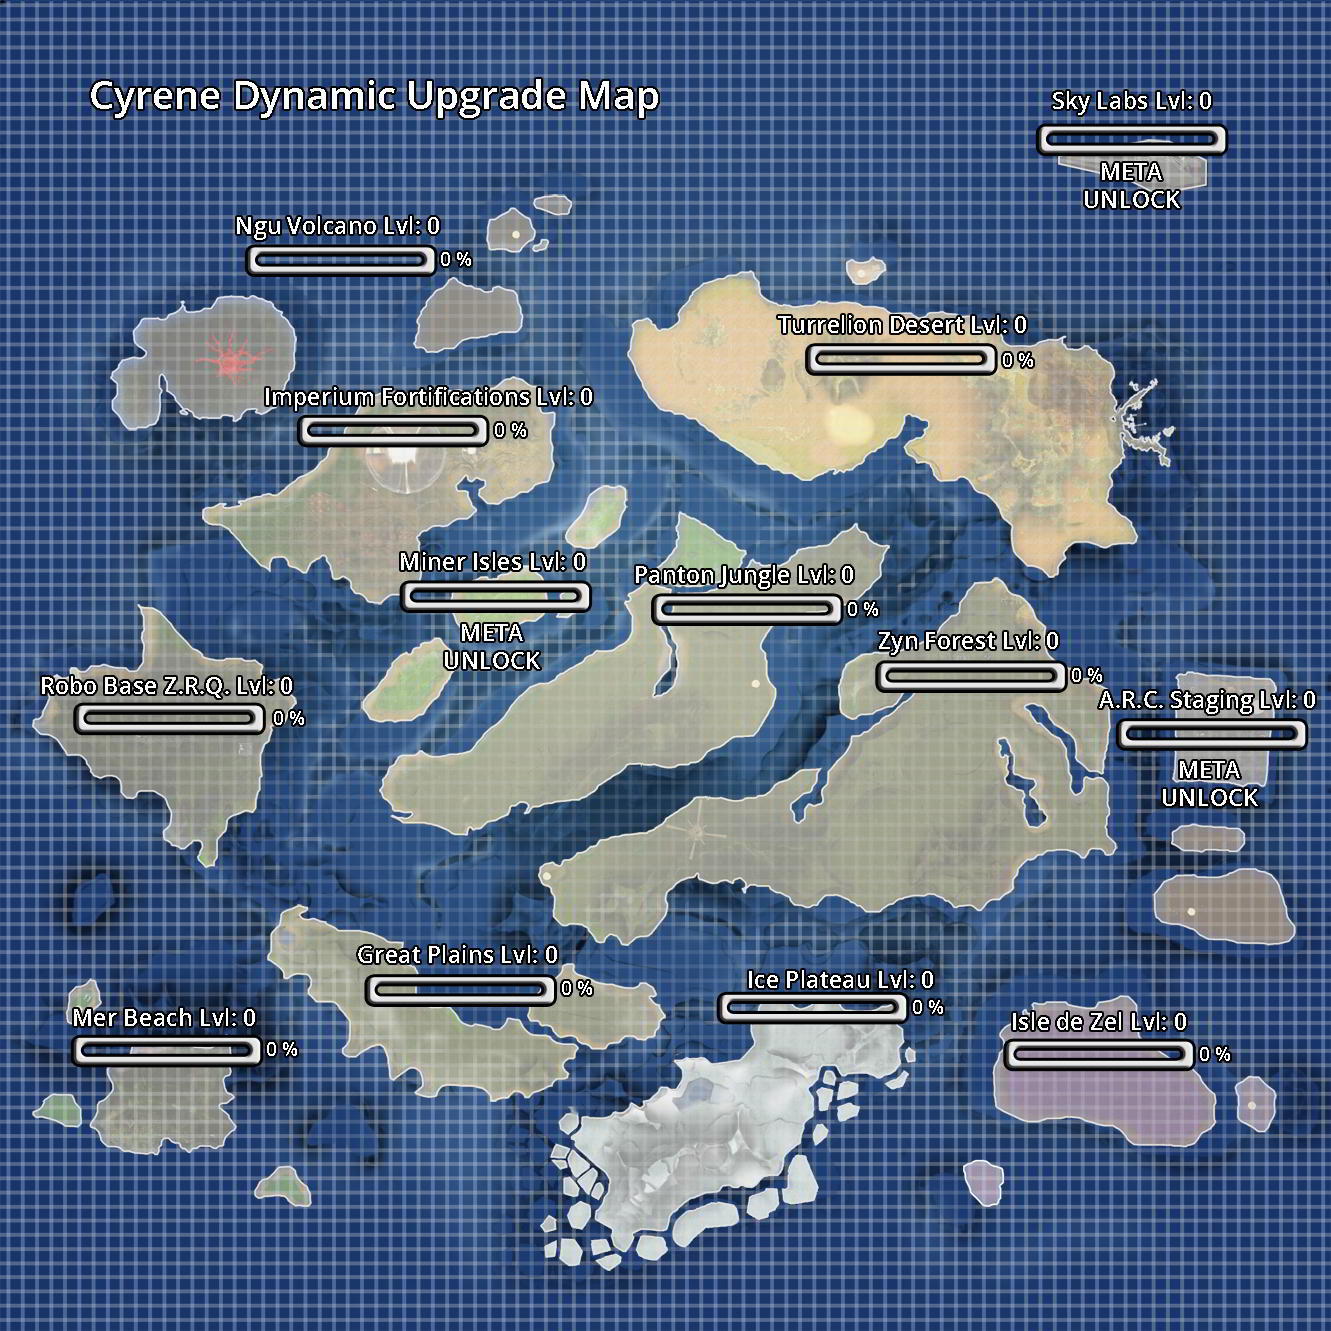 Cyrene dymanic upgrade map 29 Oct 2014.jpg